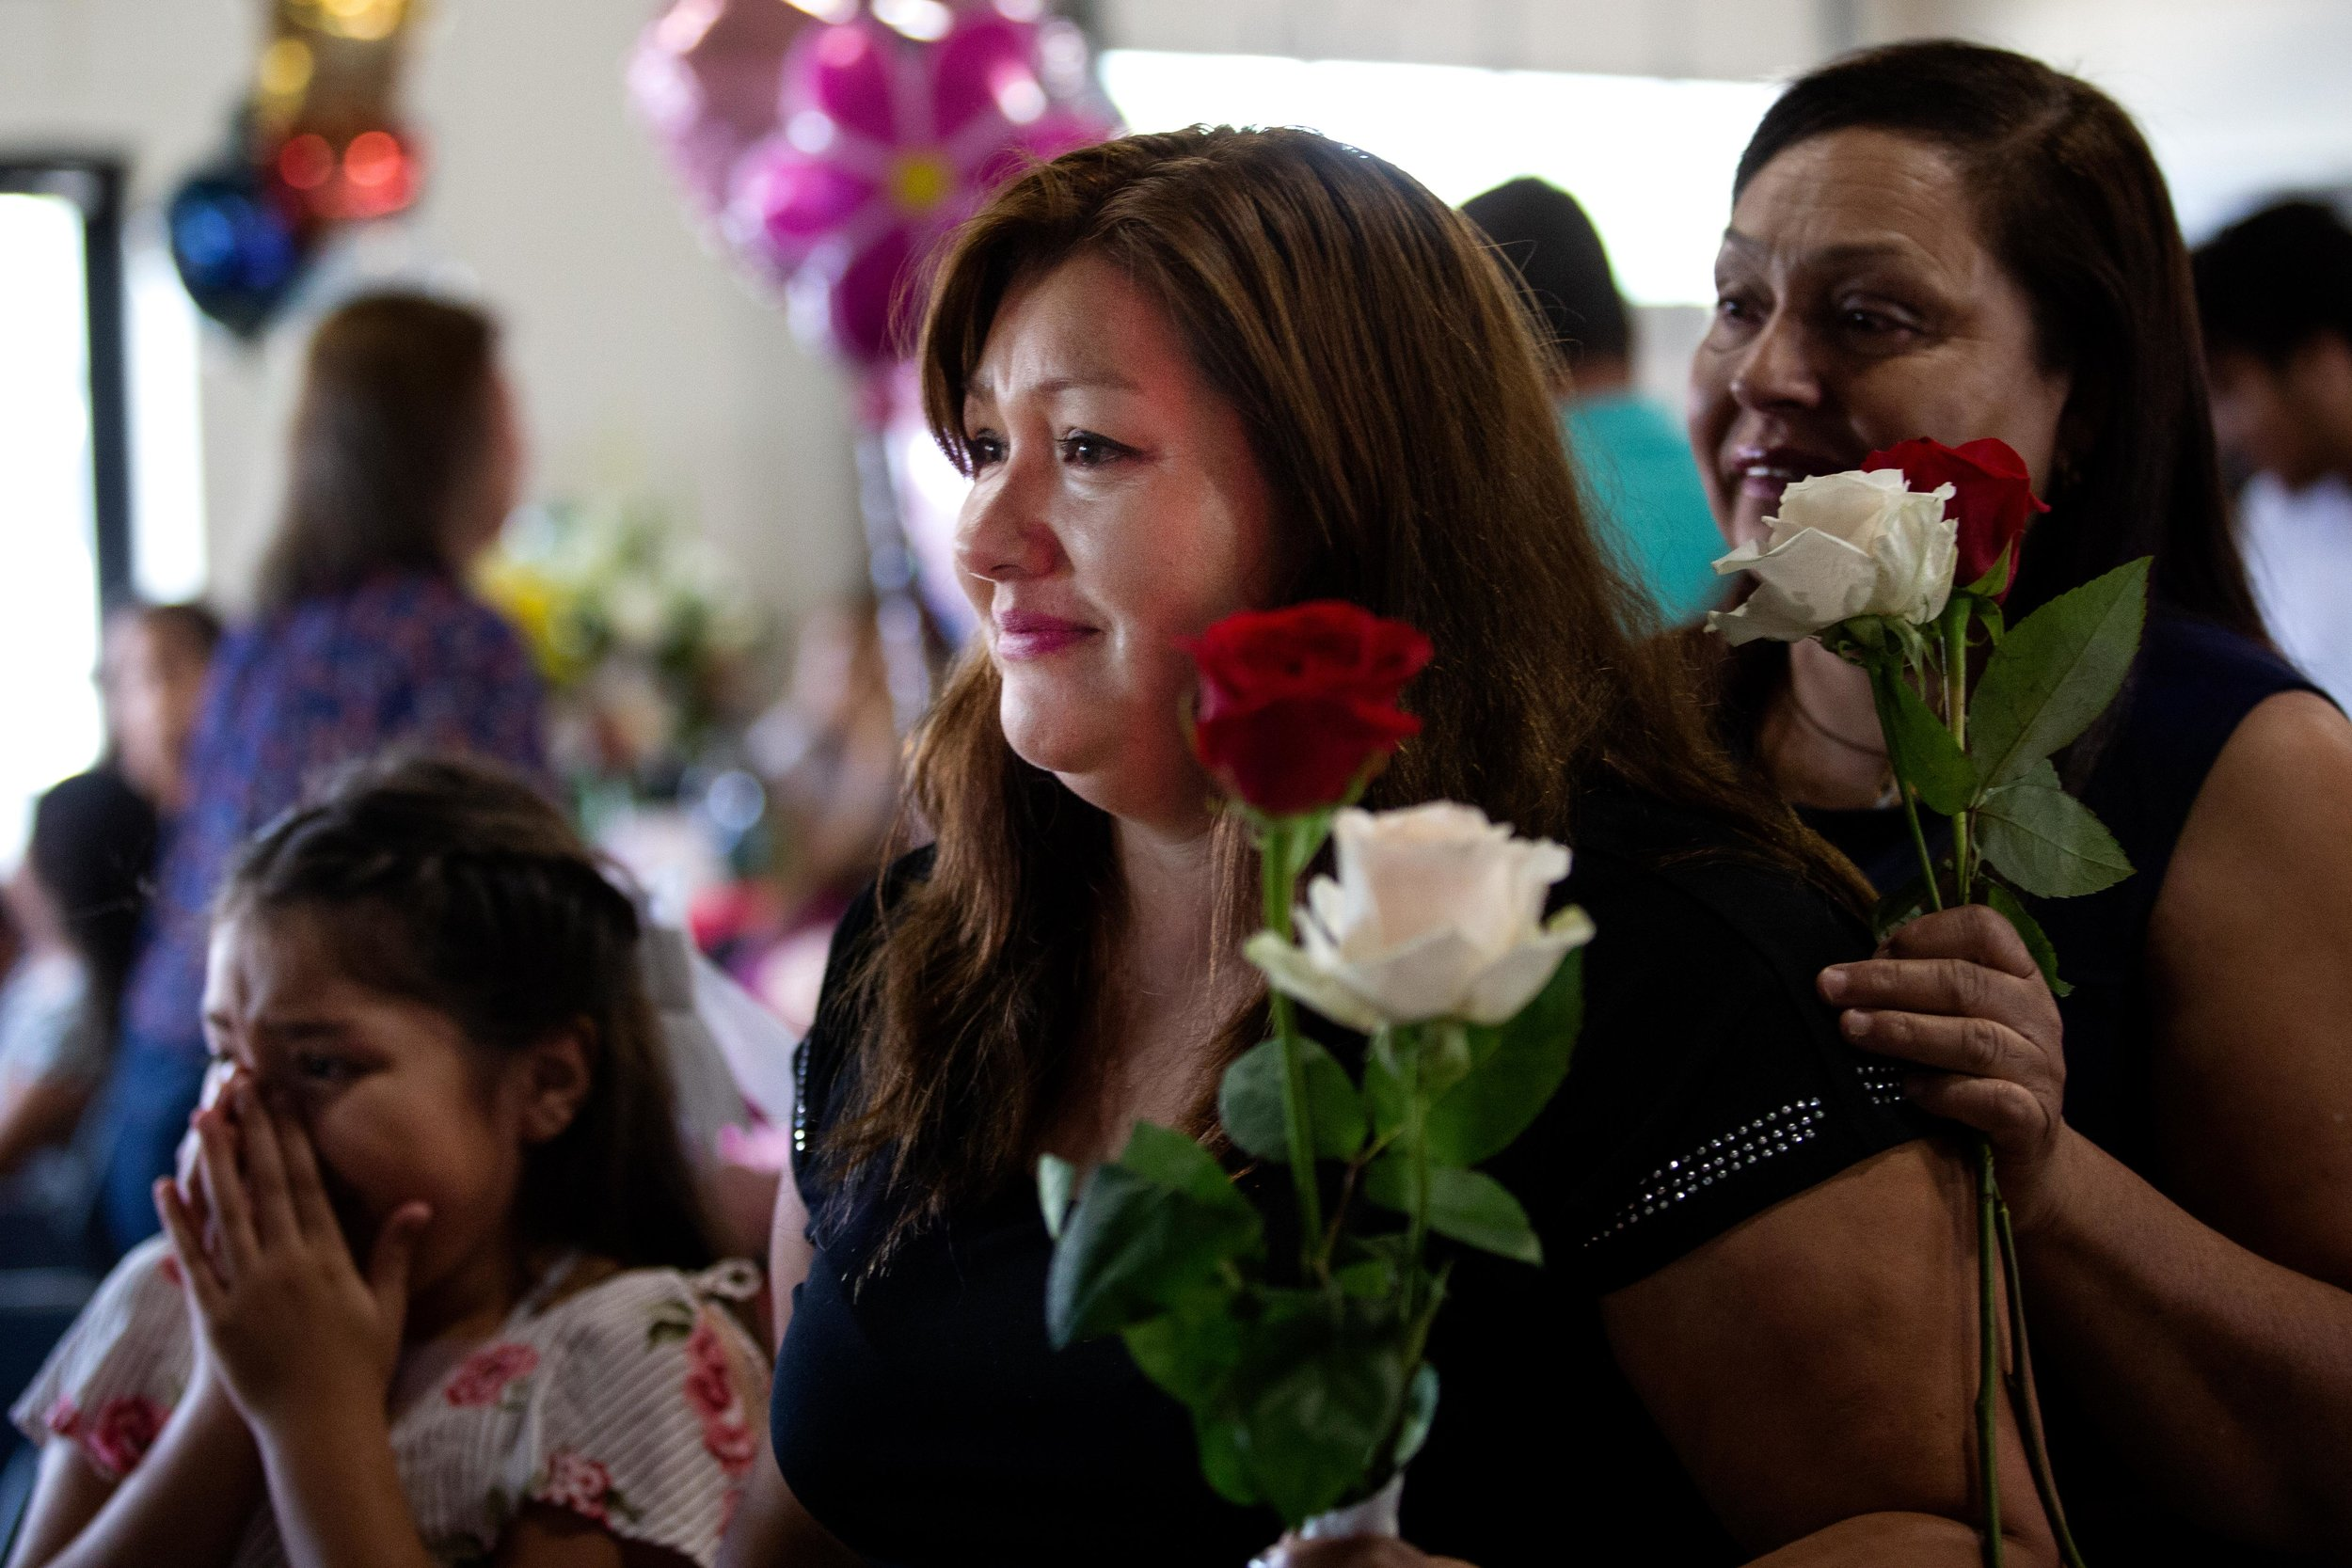 ROUND ROCK, TX. August 10, 2018. Maria Garcia waits to be reunited with her mom, whom she has not seen in over a decade. Montinique Monroe for KUT News